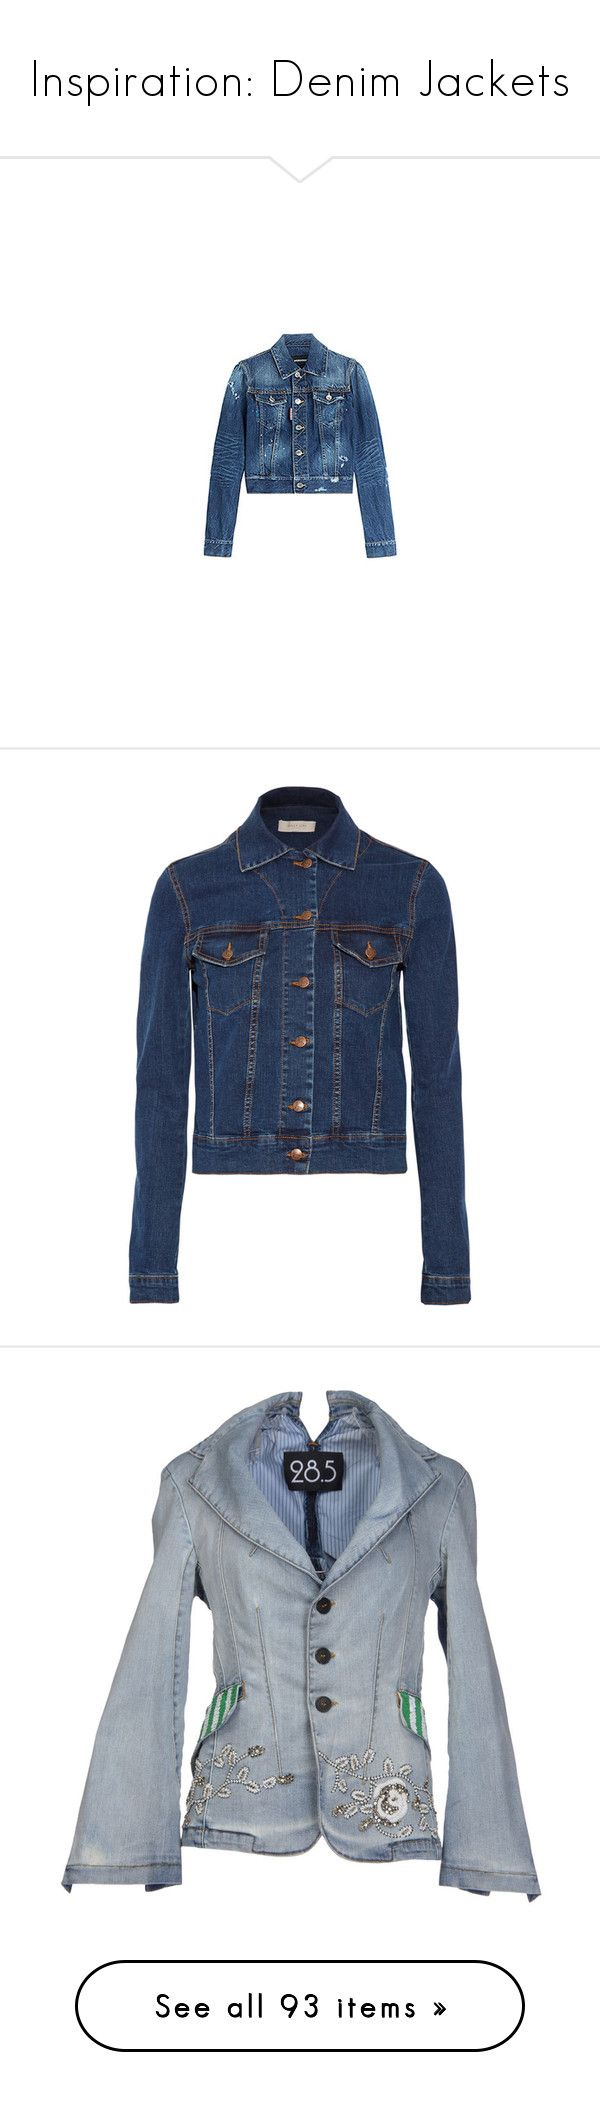 """""""Inspiration: Denim Jackets"""" by skeletorsmom ❤ liked on Polyvore featuring outerwear, jackets, slim fit jackets, slim fit jean jacket, dsquared2, blue denim jacket, urban jackets, philipp plein, denim and куртки"""